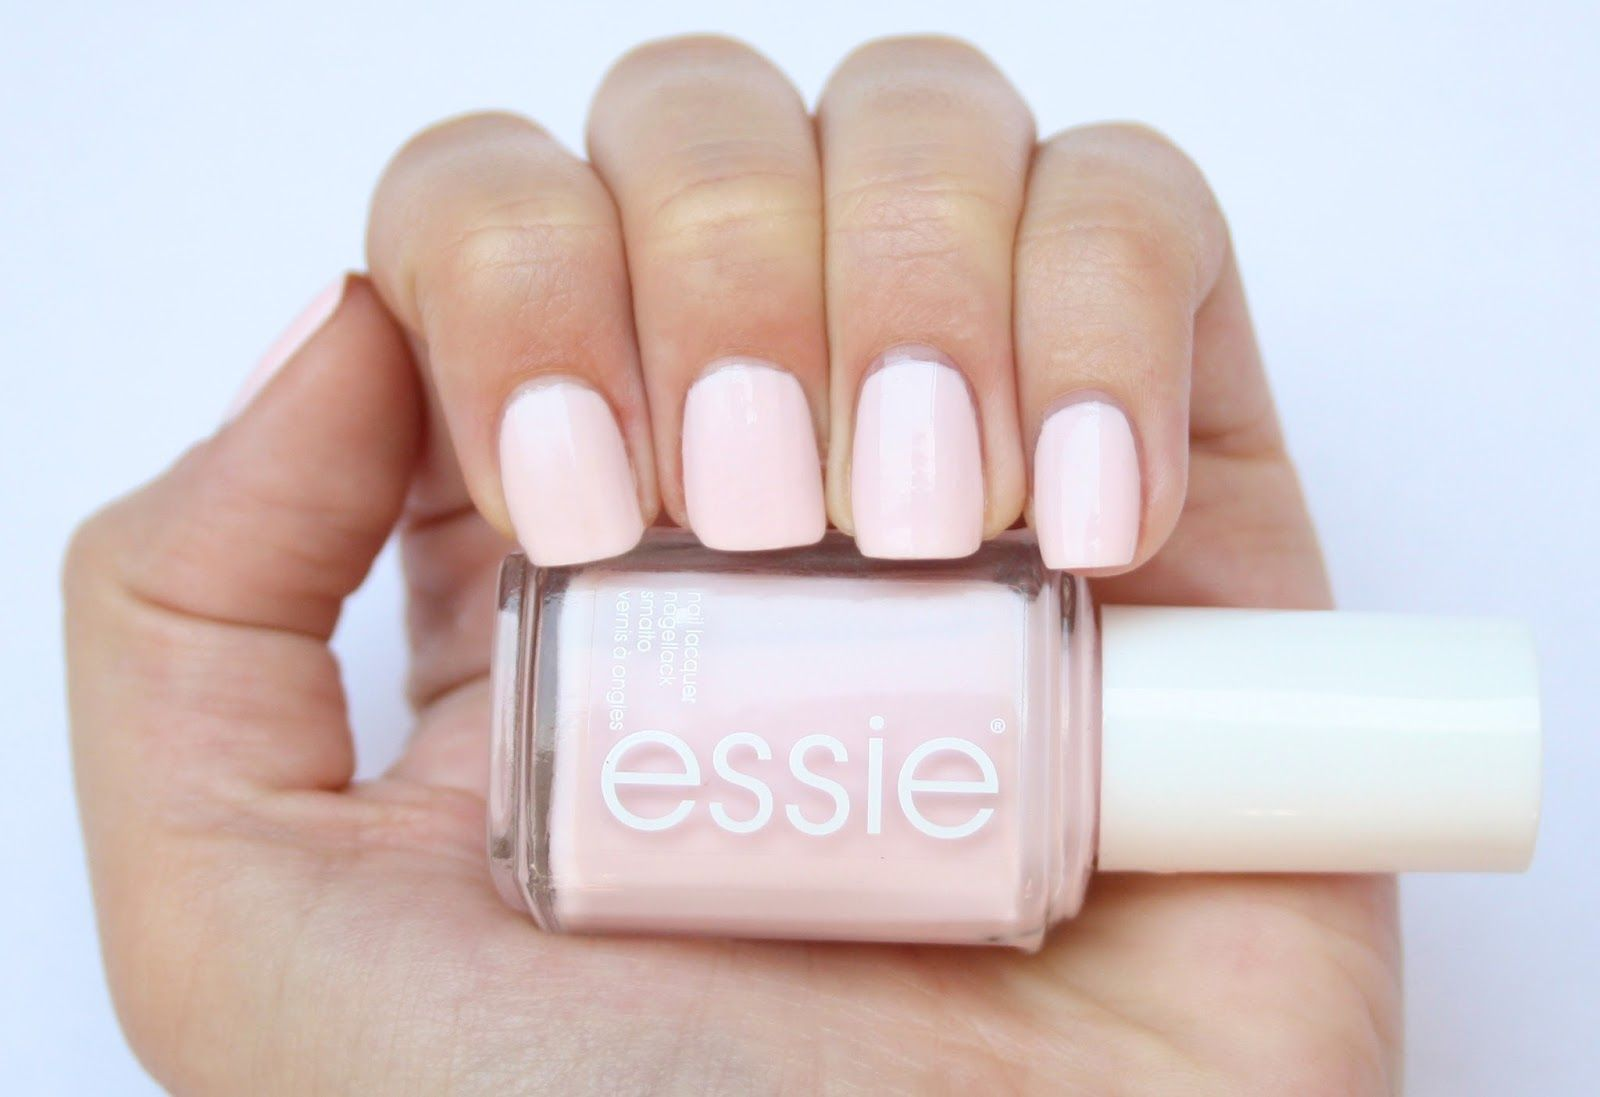 essie fiji nail polish | Nails and accessories | Pinterest | Makeup ...